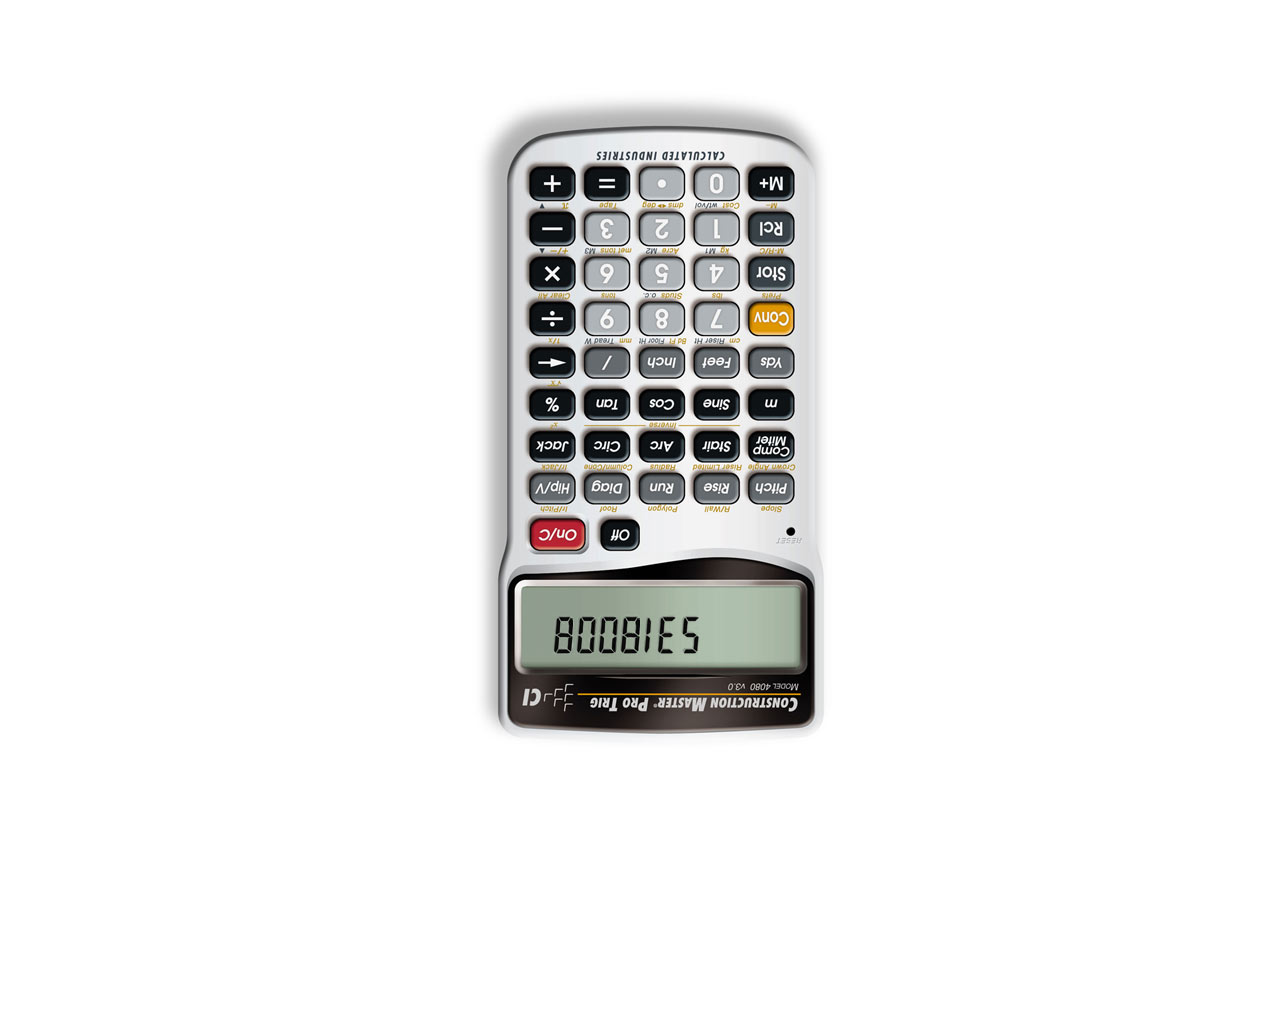 Funny Calculator 壁紙画像 - PCHDWallpaper com